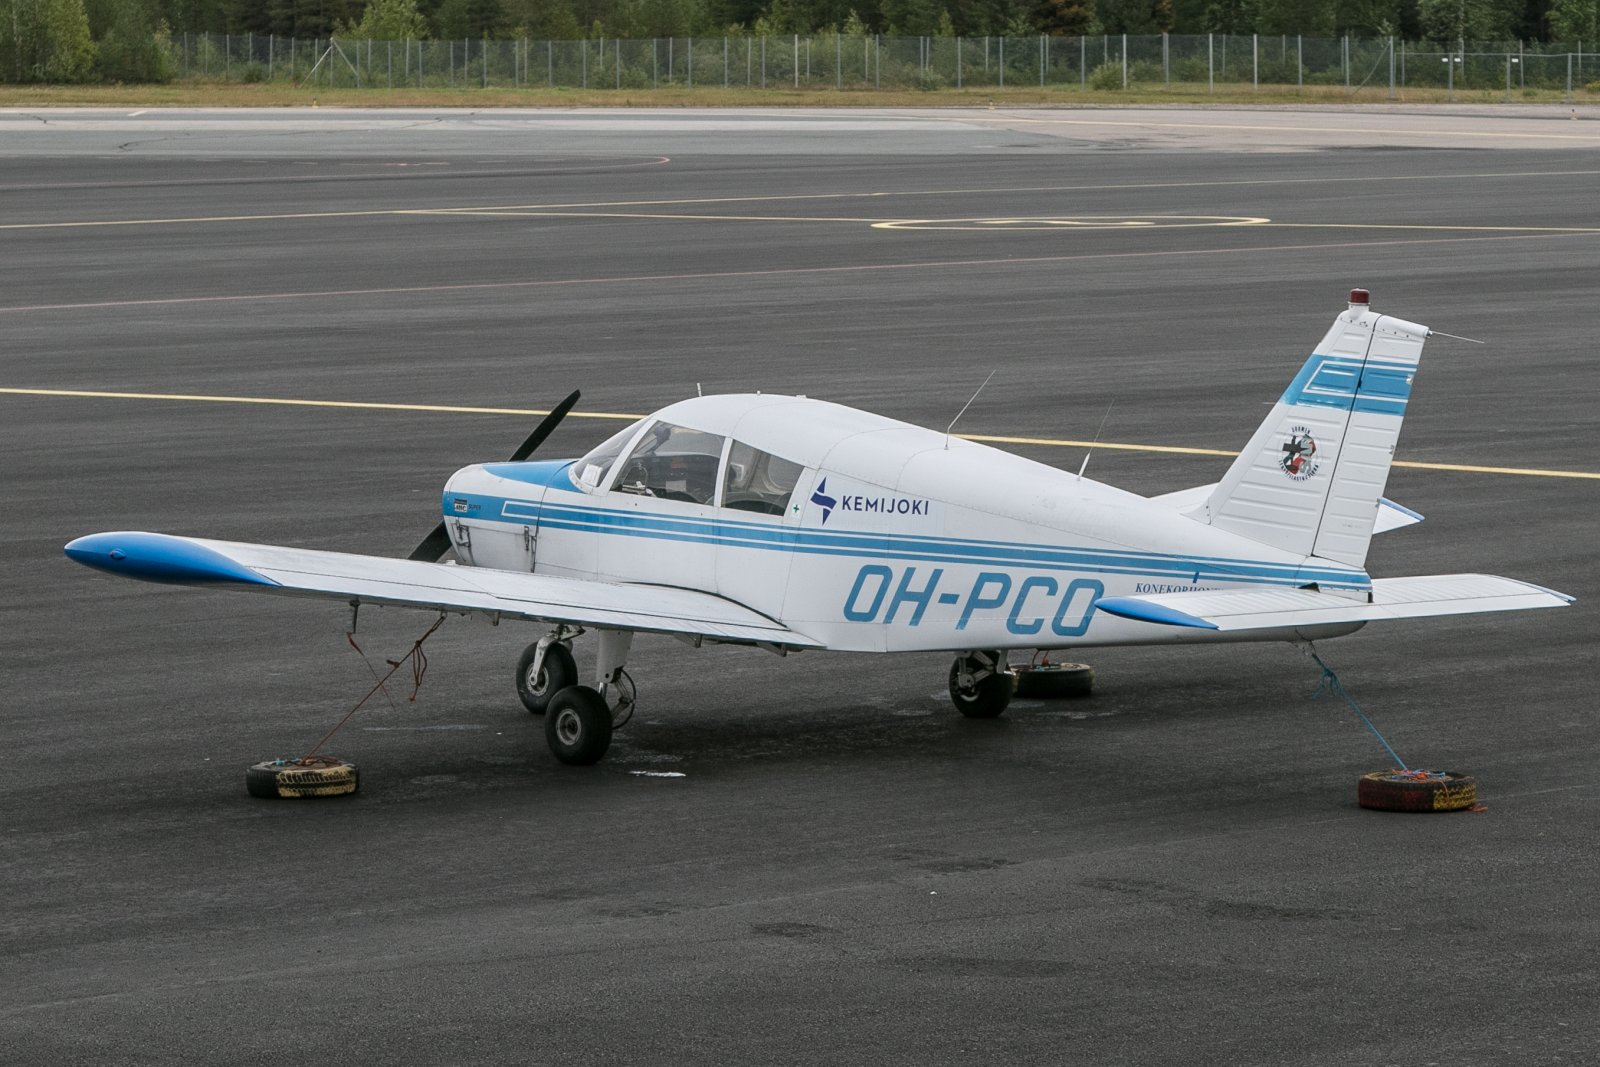 OH-PCO, Piper PA-28-140 Cherokee